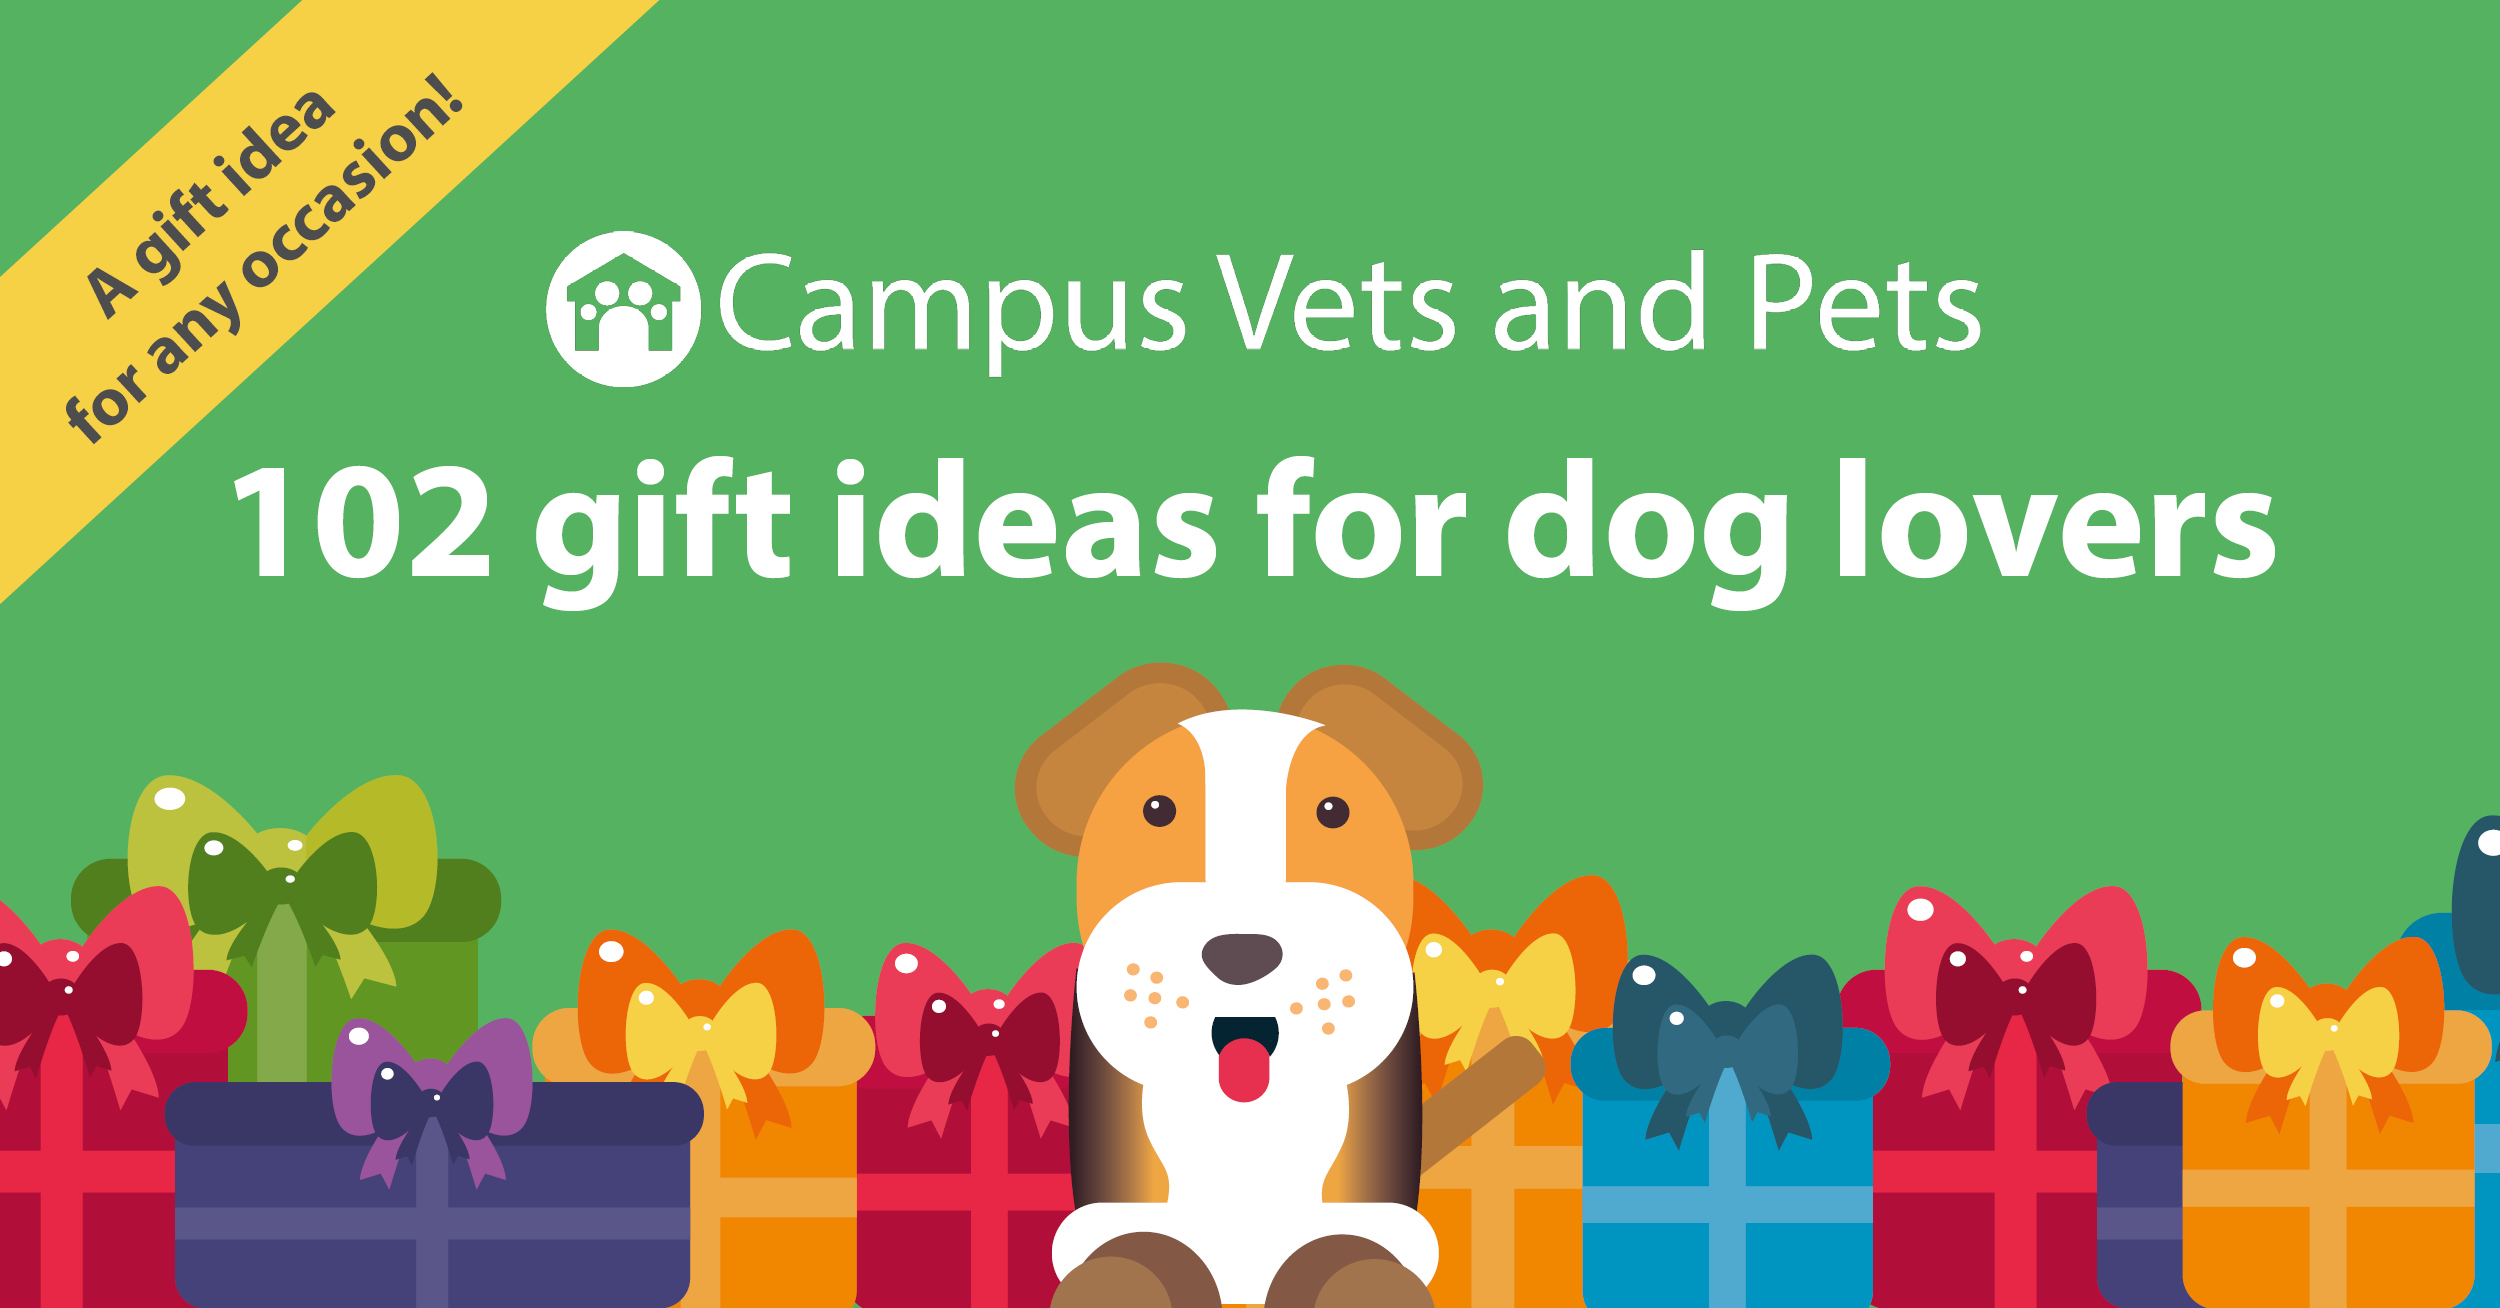 102 pawesome gift ideas for dog lovers & dog owners in 2021